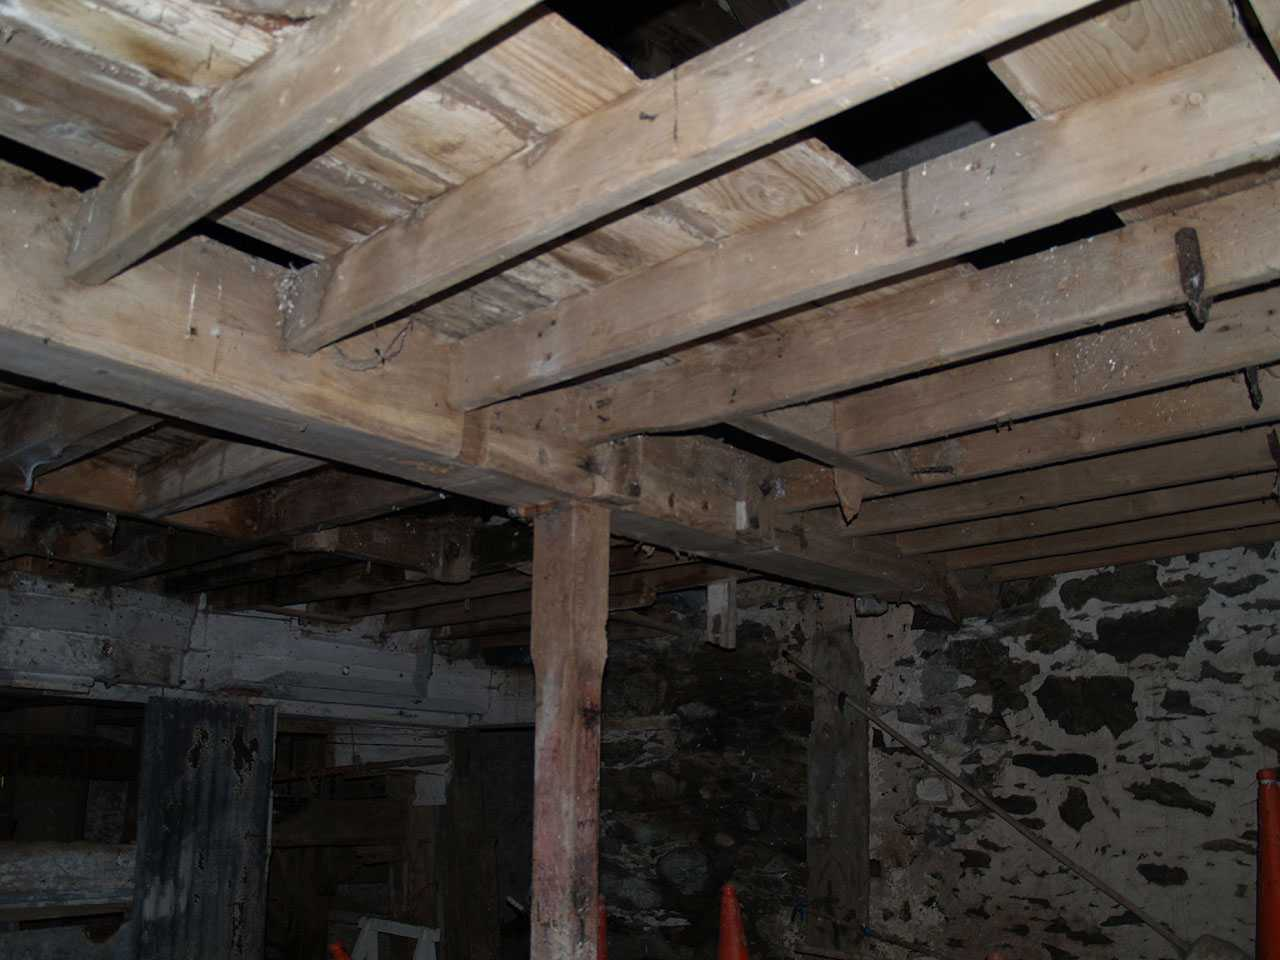 Aberffraw, Melin Aberffraw Water Mill, First Floor Beams